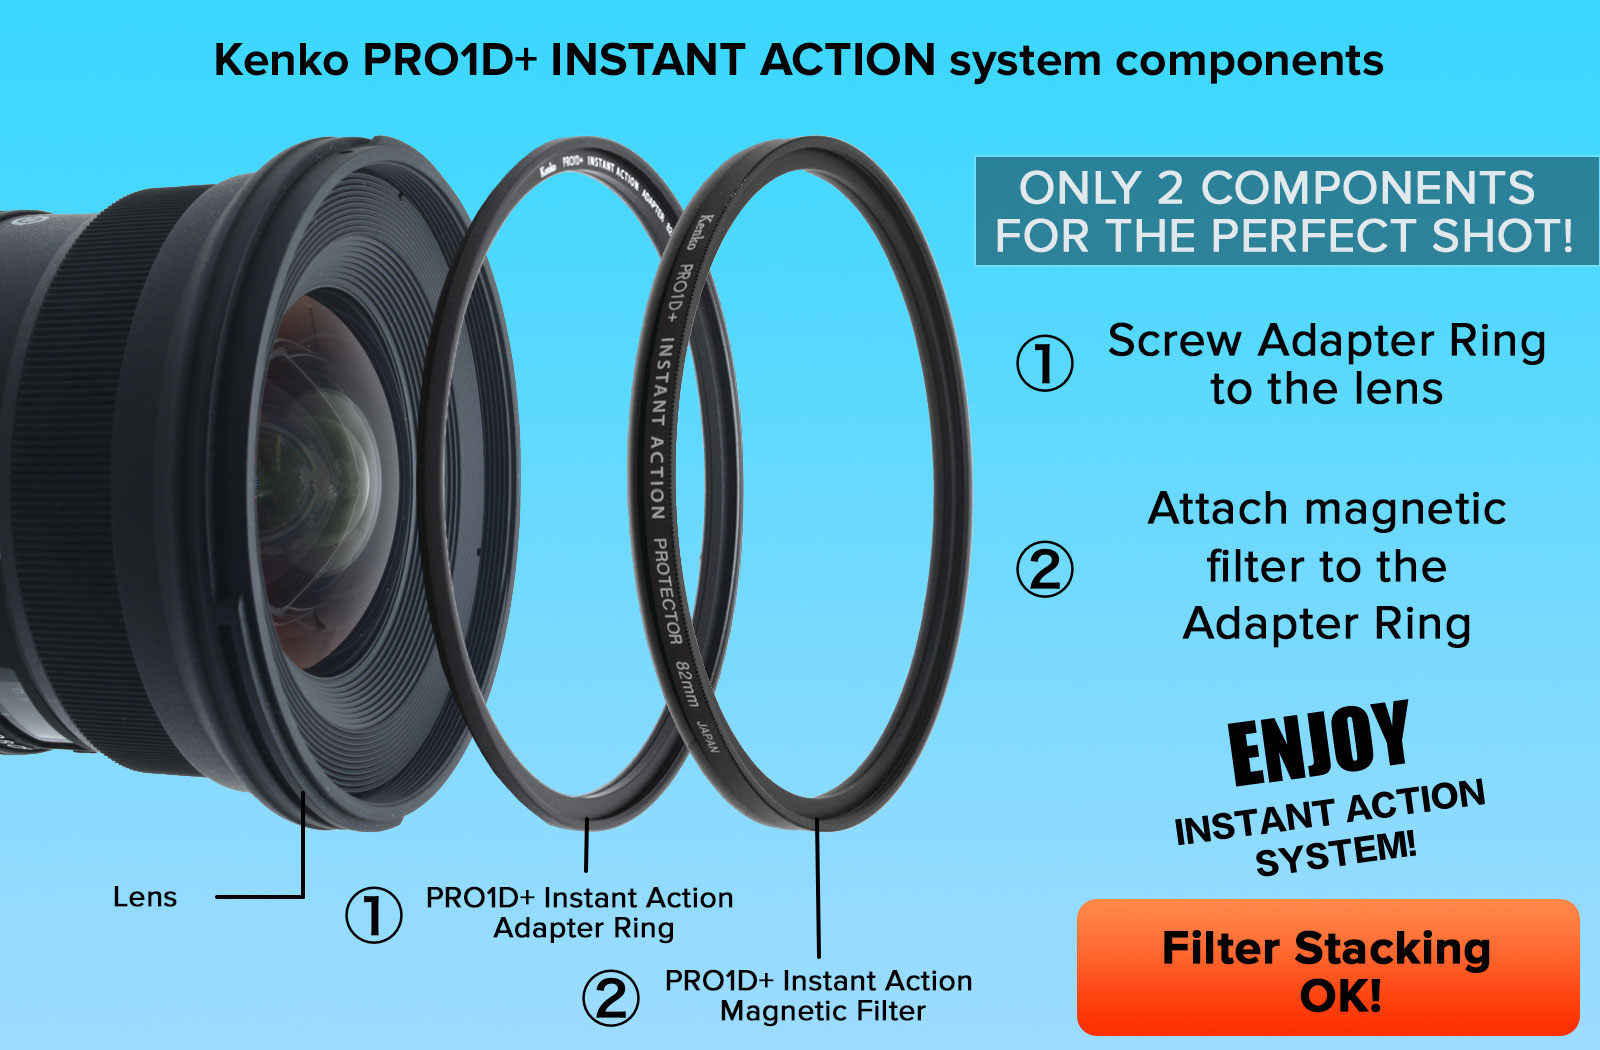 Adapter Ring is necessary to use a Kenko PRO1D+ INSTANT ACTION System. If you want to change Kenko PRO1D+ Instant Action filters that are all the same size, you don't have to remove the Adapter Ring.